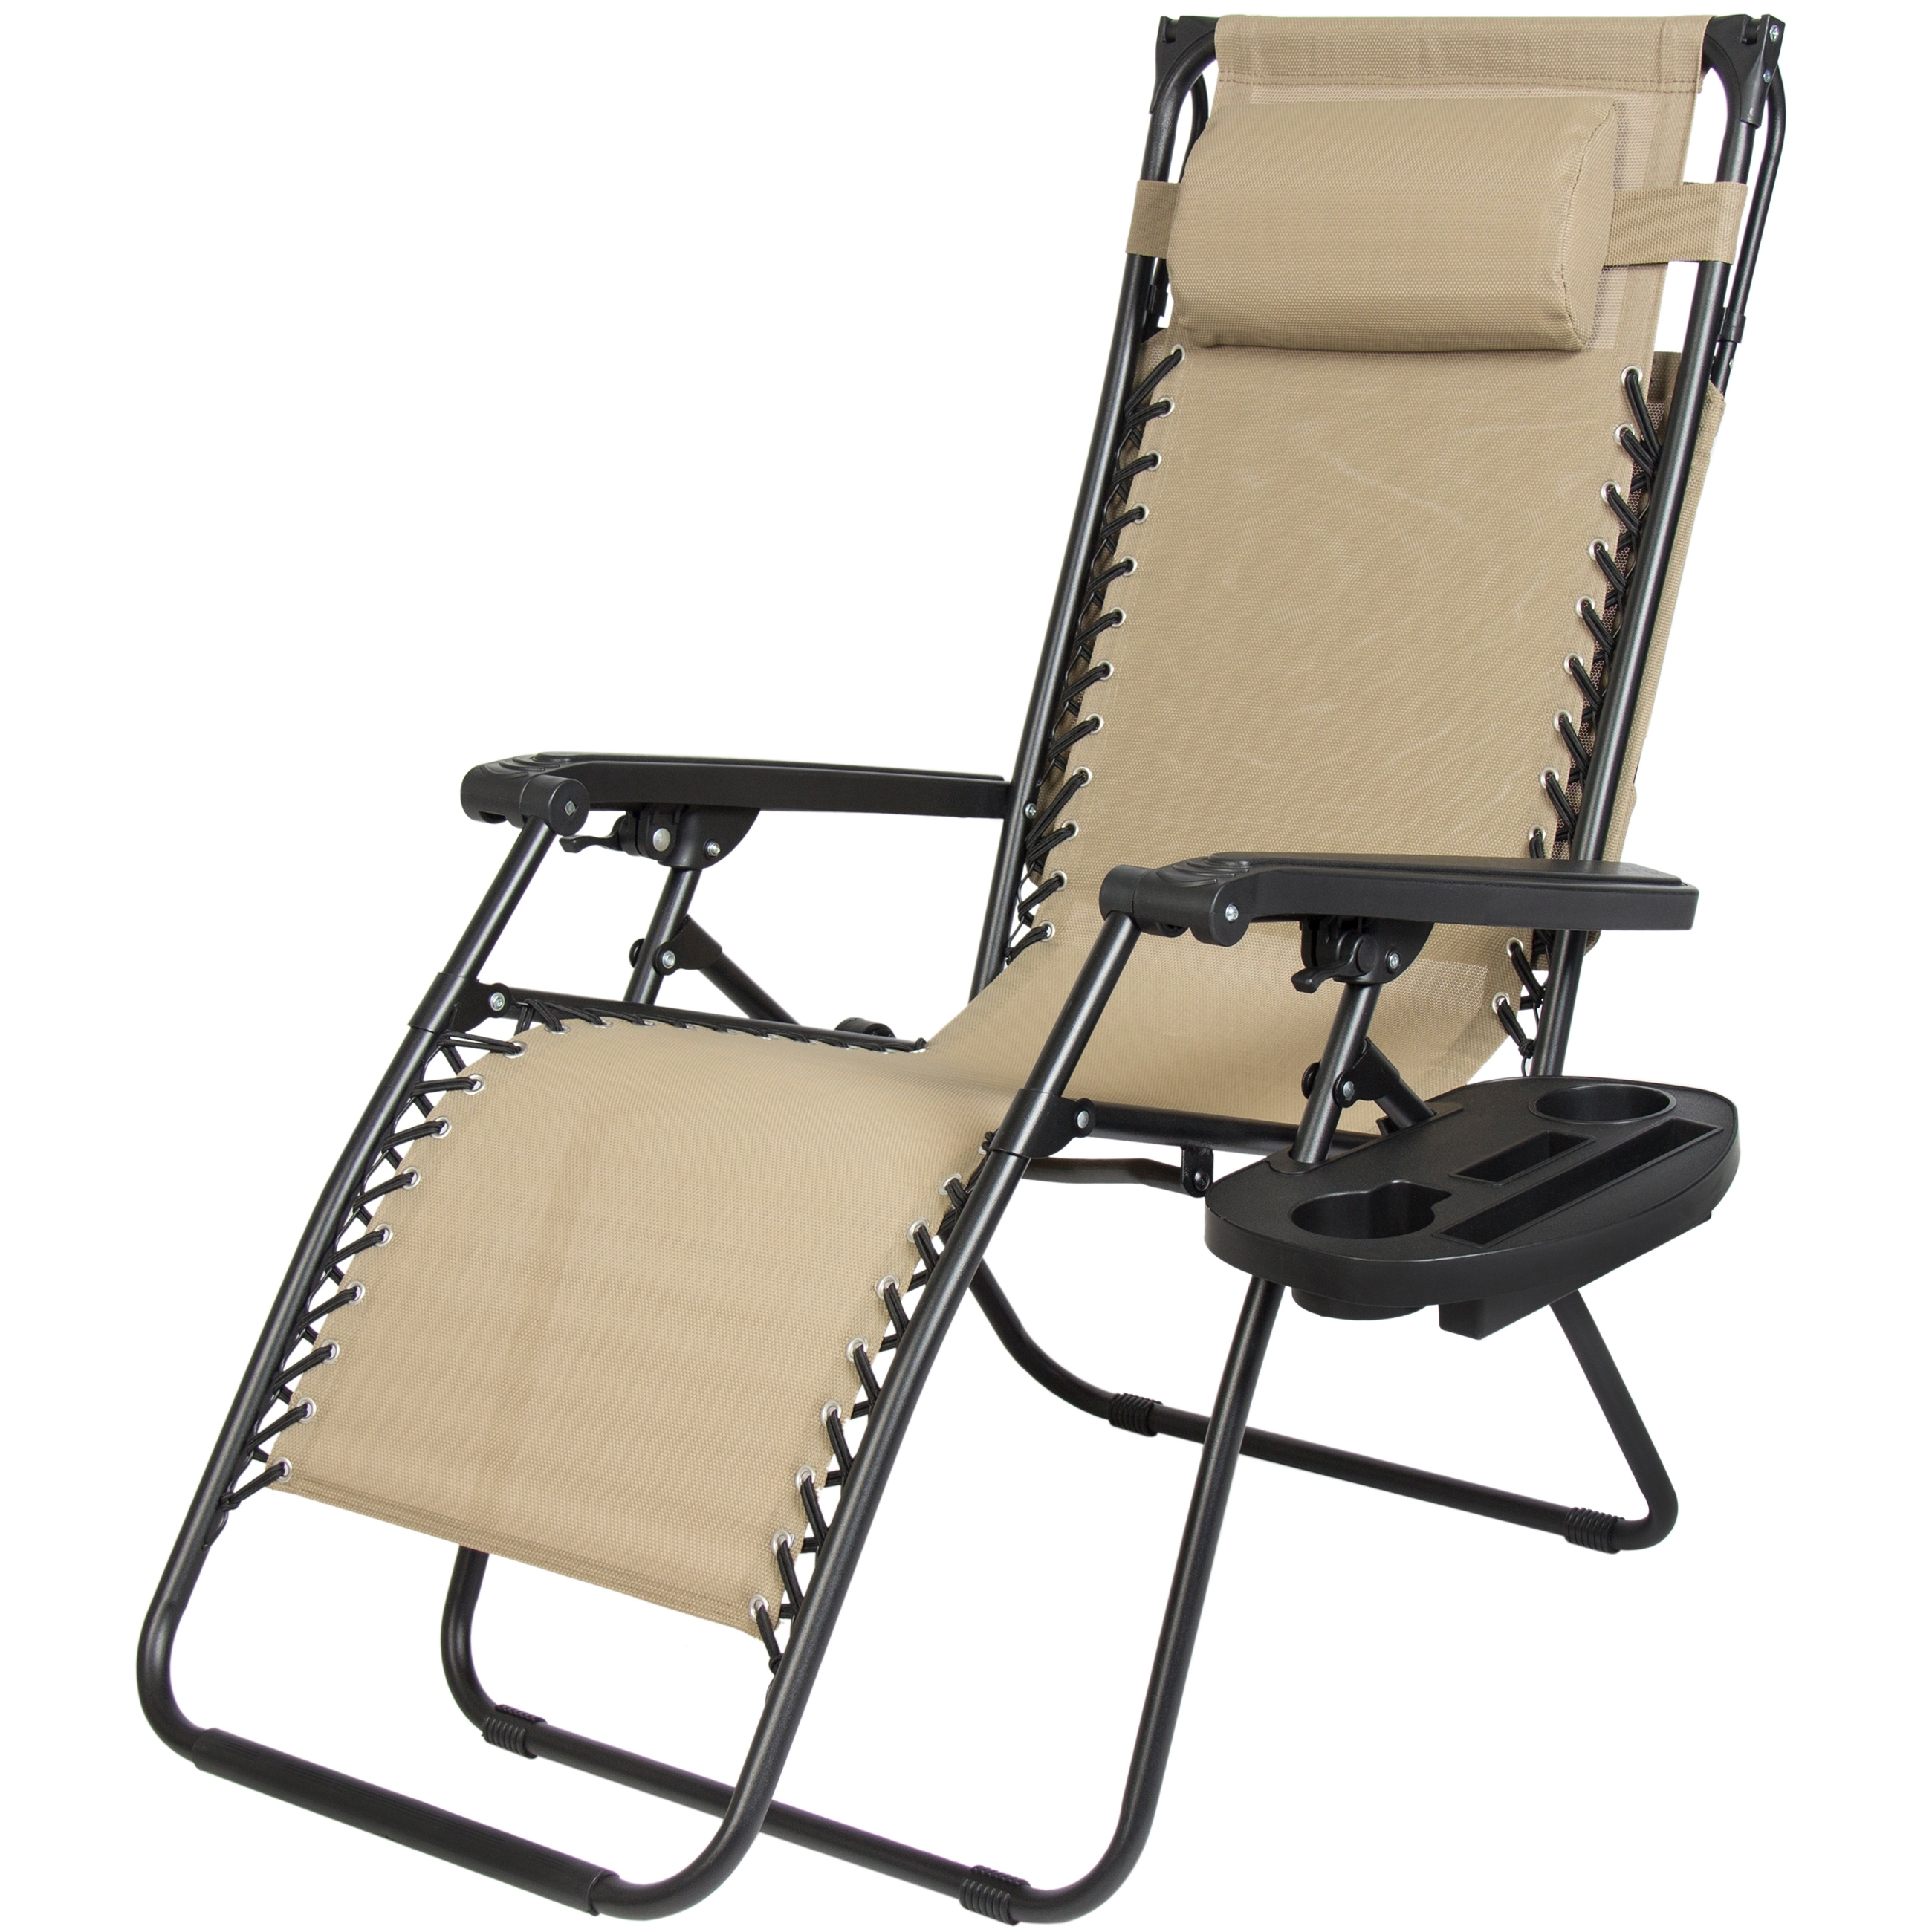 Most Recently Released Lounge Chair : Outdoor Lounge Chairs With Wheels Patio Furniture In Folding Chaise Lounge Lawn Chairs (View 10 of 15)